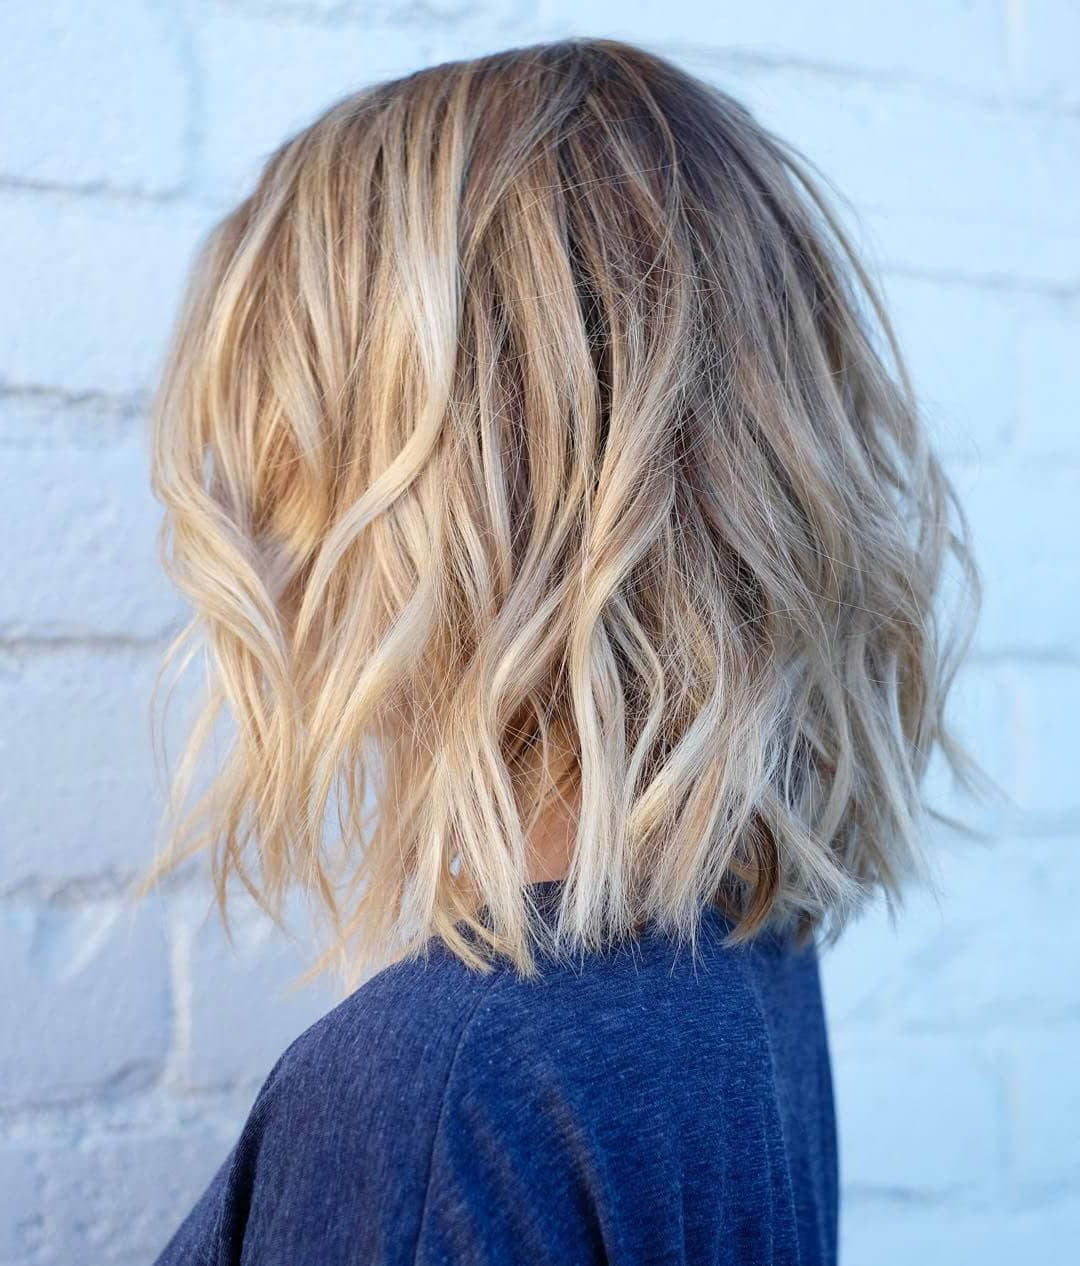 50 Fresh Short Blonde Hair Ideas To Update Your Style In 2018 Pertaining To Angled Ash Blonde Haircuts (Gallery 18 of 20)